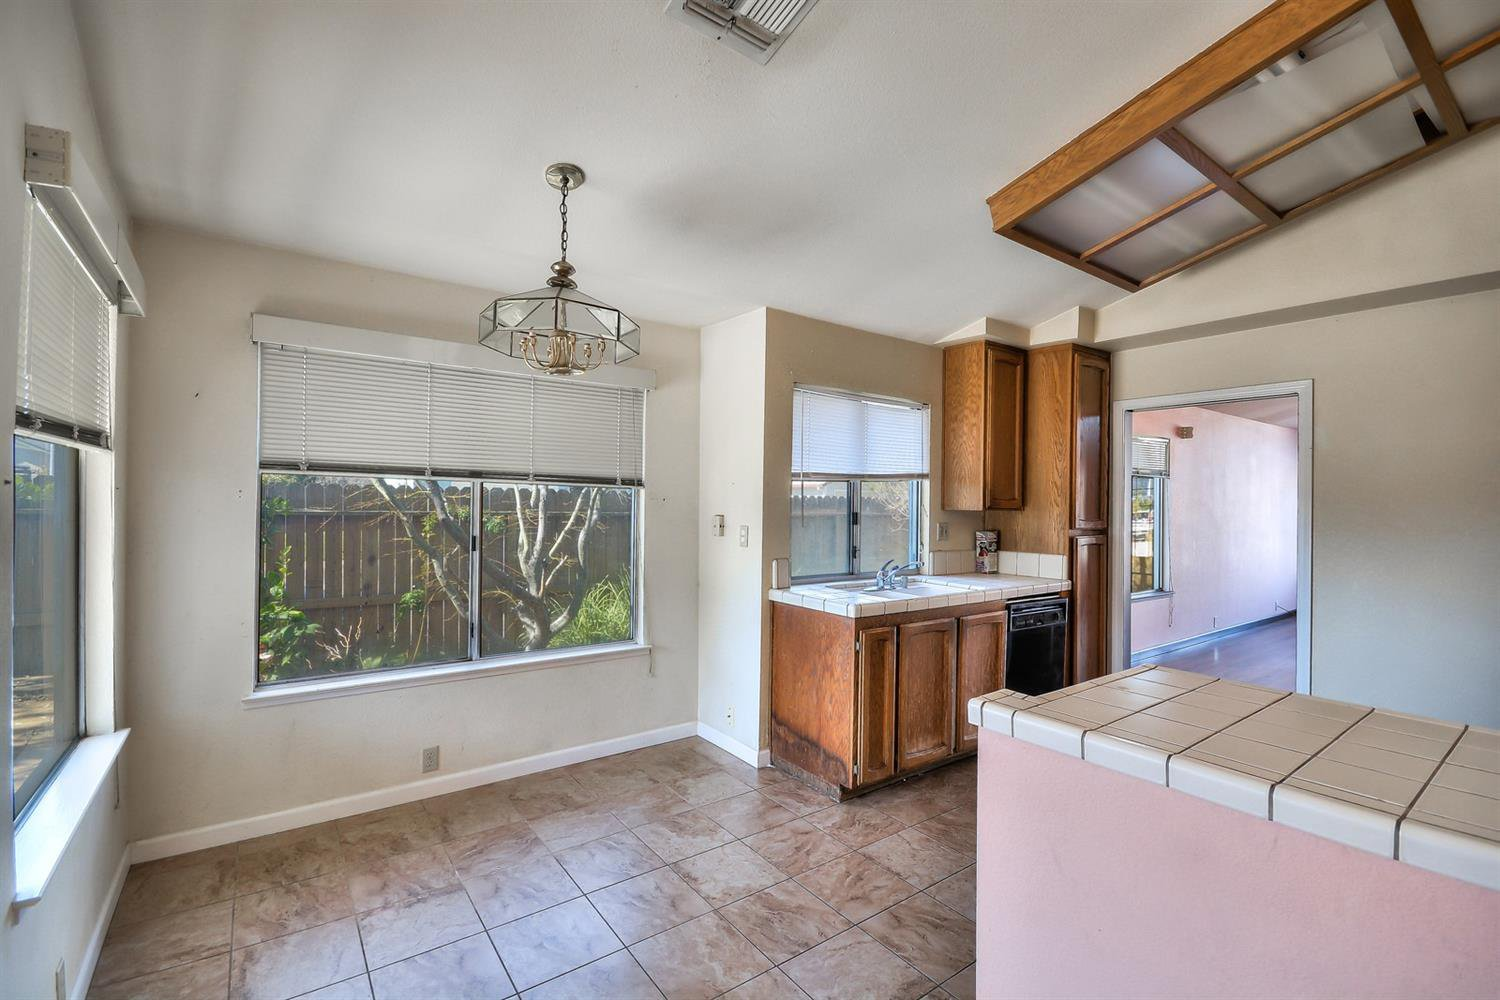 8400 Pastori Way Sacramento 95828 California Mls 18013397